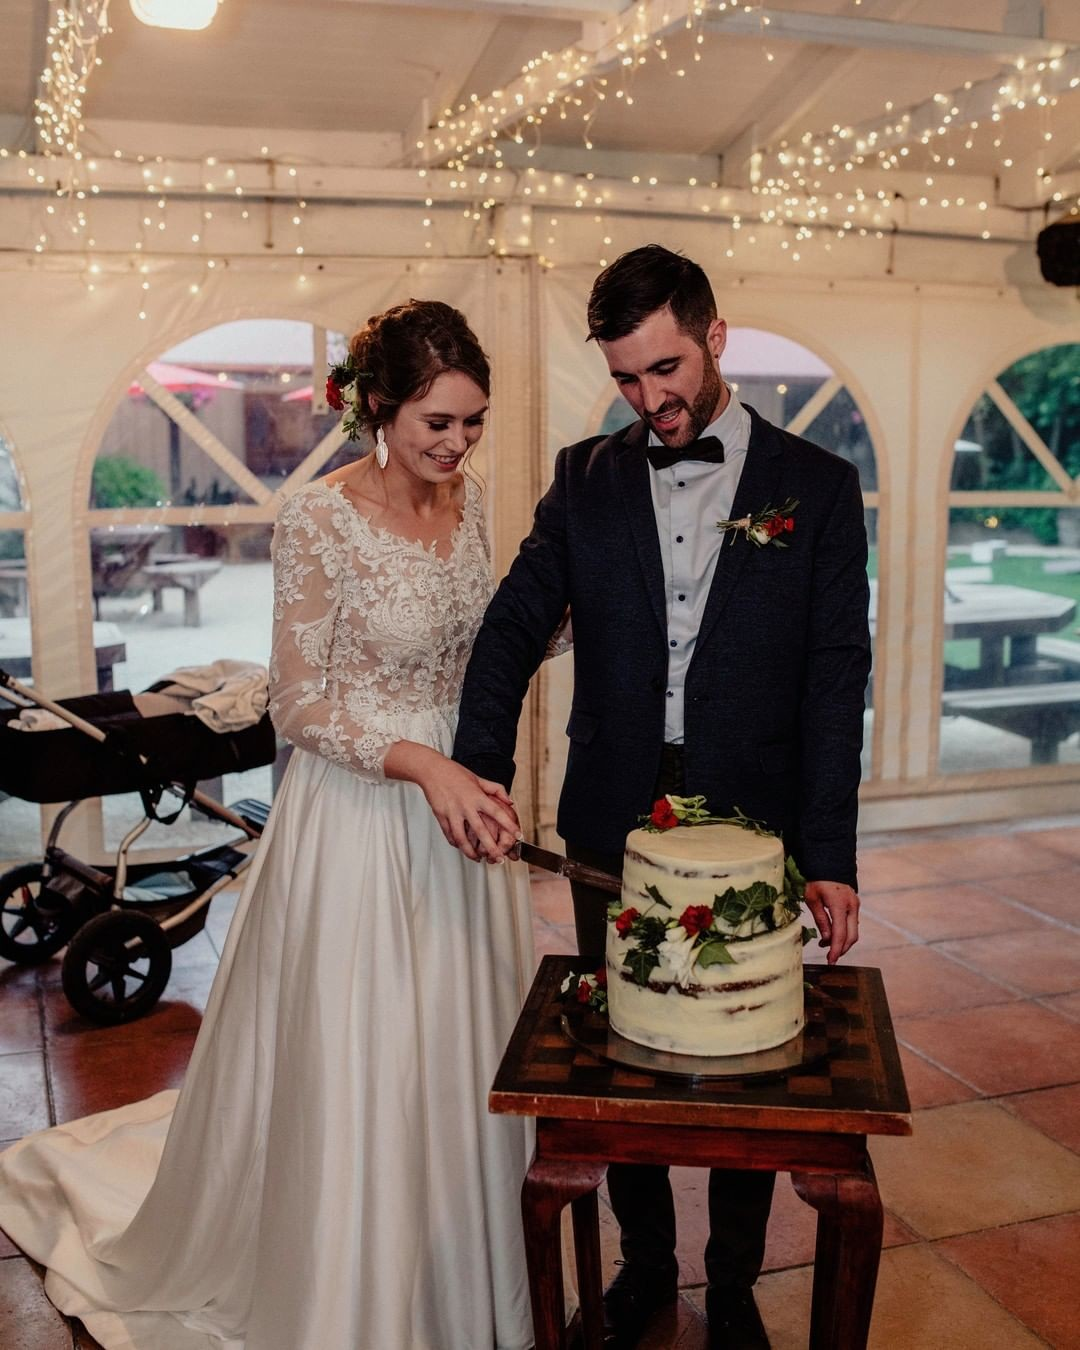 From the first step down the aisle all the way to the cake cutting, we'll have you looking flawless...just like our bride Jessica in